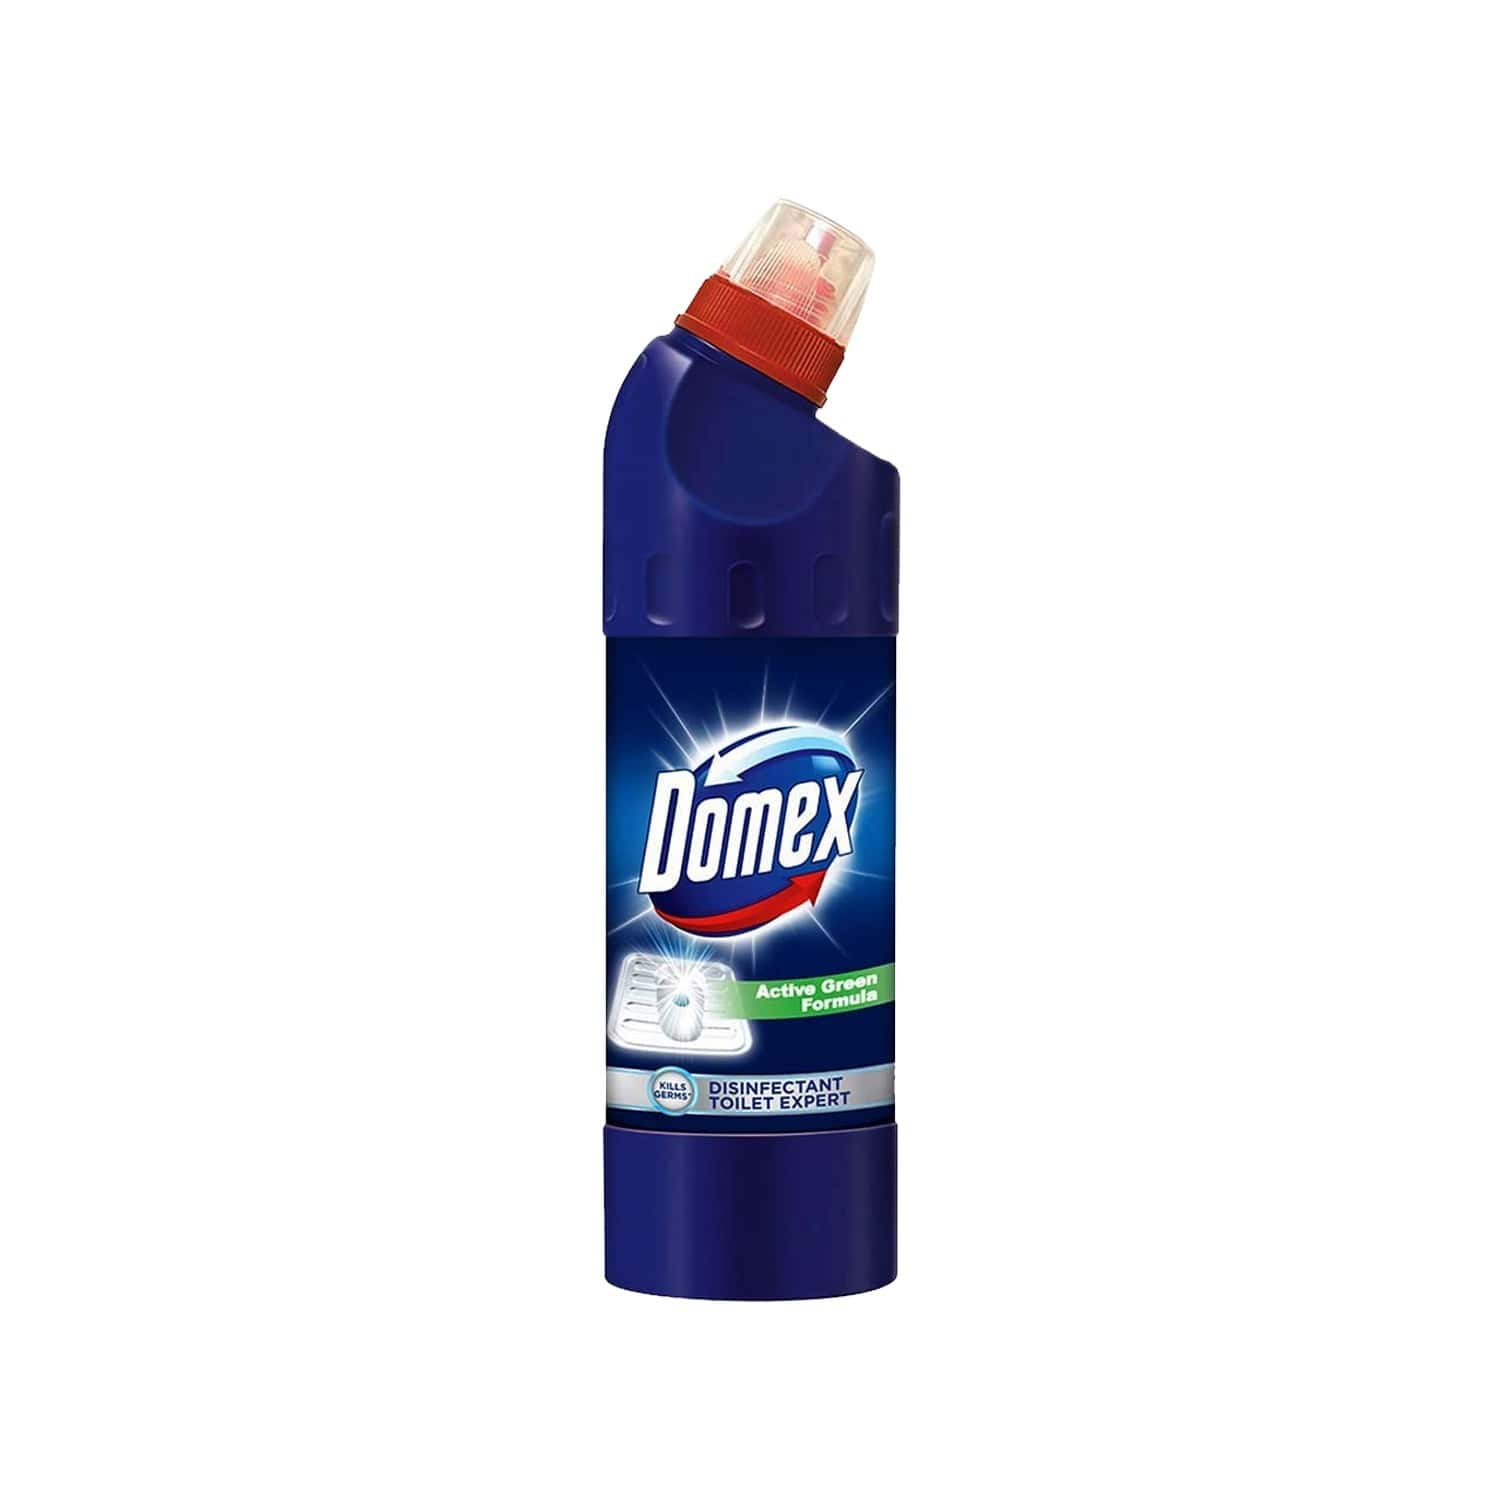 Domex Disinfectant Expert Toilet Cleaner - 500 Ml